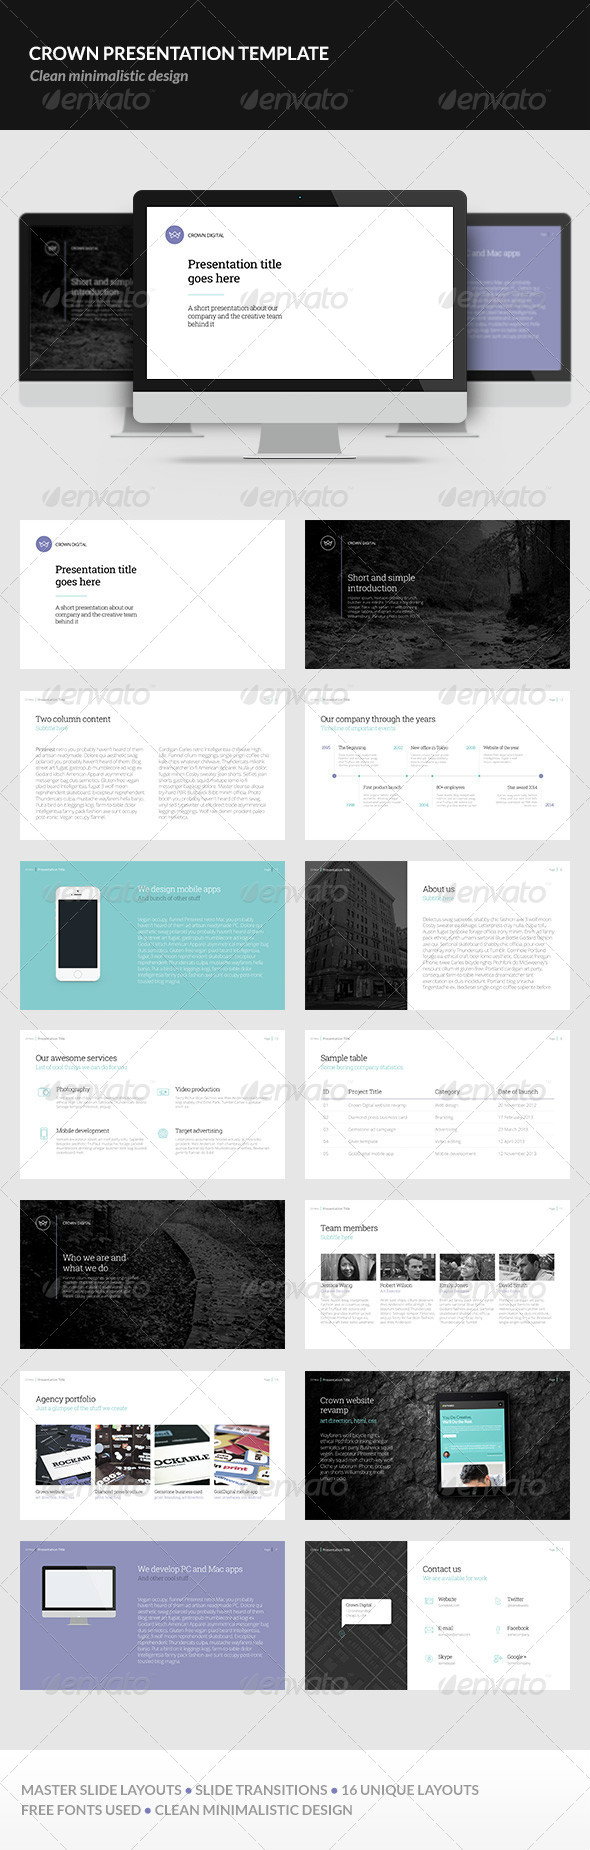 GraphicRiver Crown Presentation Template 6147305